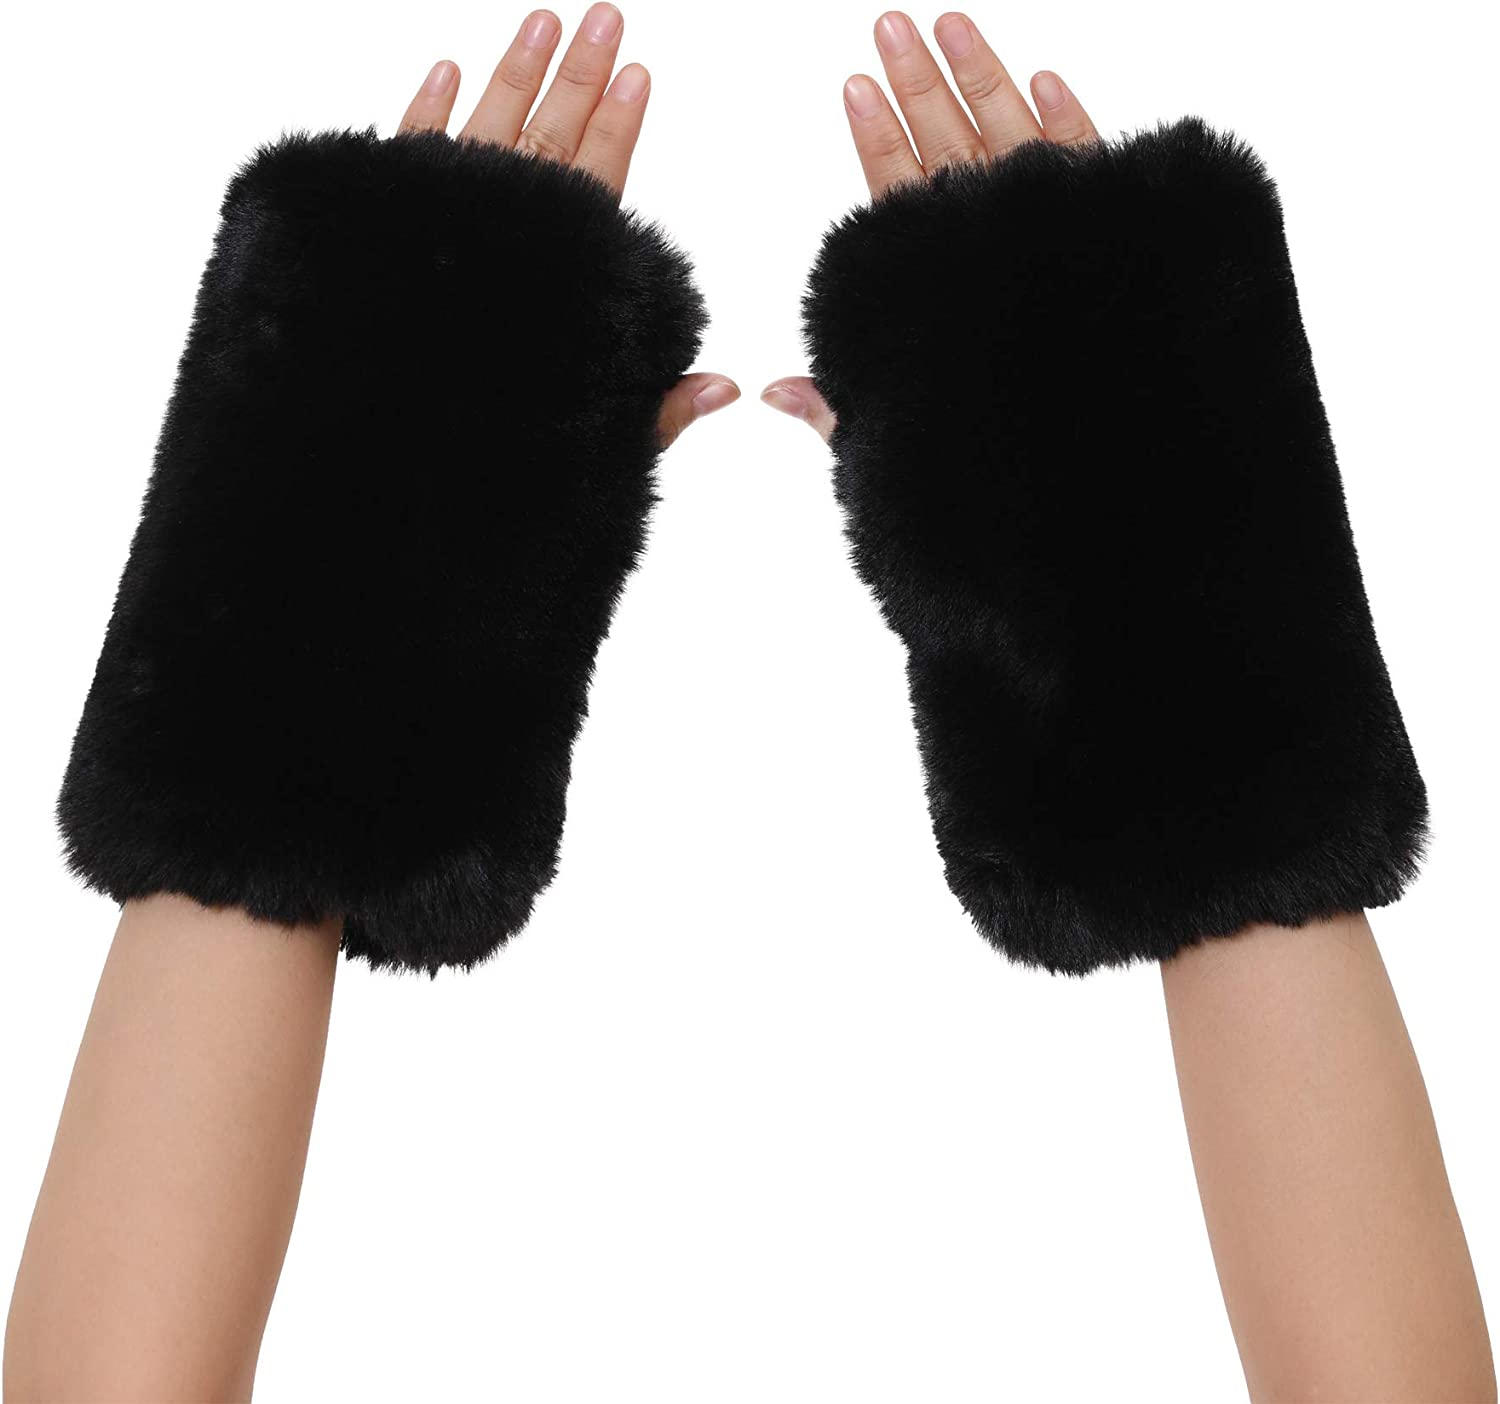 La Carrie Women Fingerless Faux Fur Gloves Smooth Furry Soft Fuzzy Plush Winter Cold Warmer Cuffs Black White for Girls